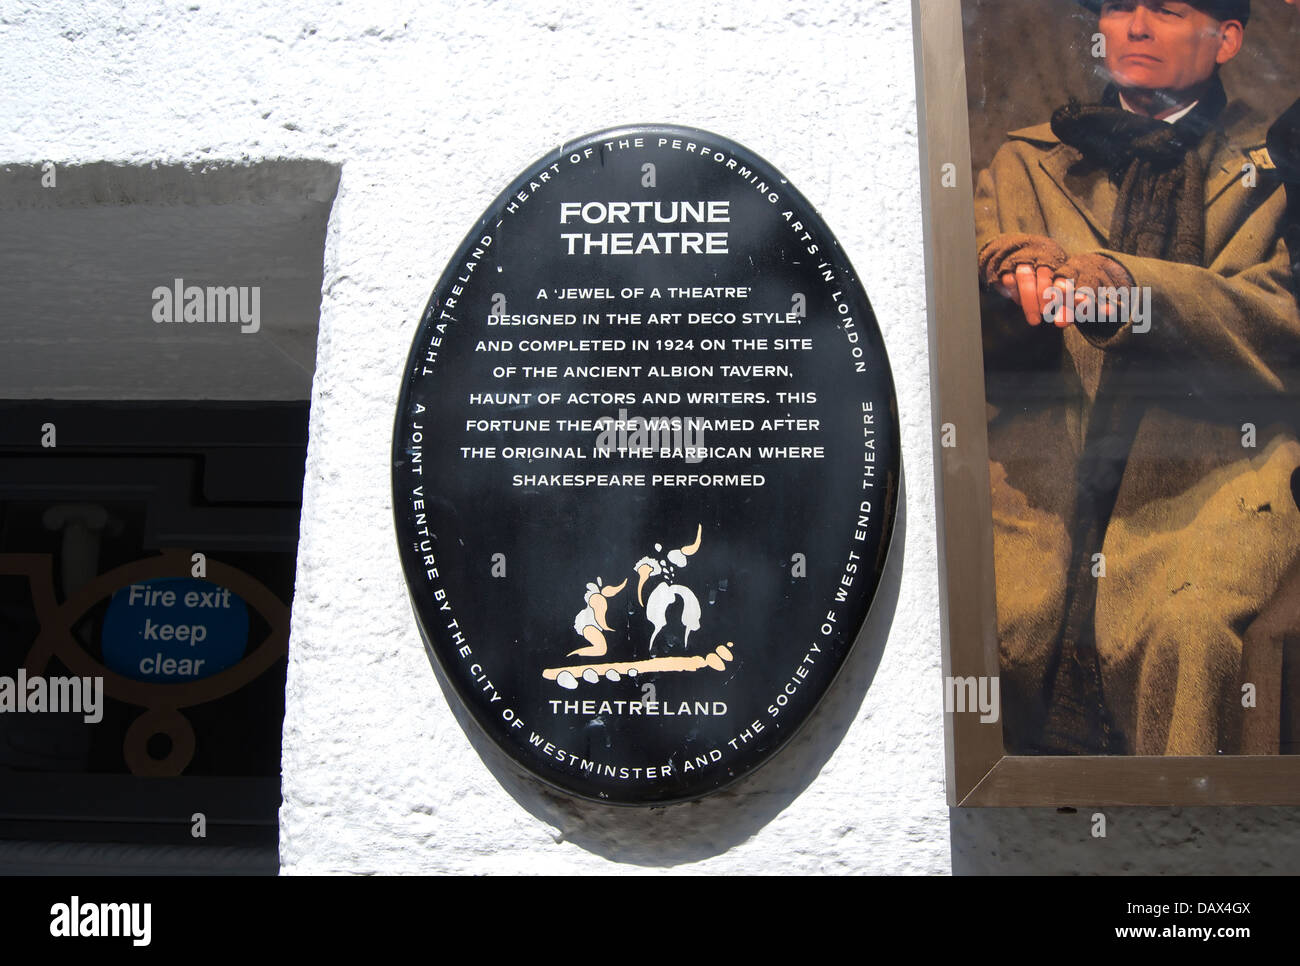 london theatreland history plaque outside the 1924 fortune theatre, covent garden, london, england - Stock Image